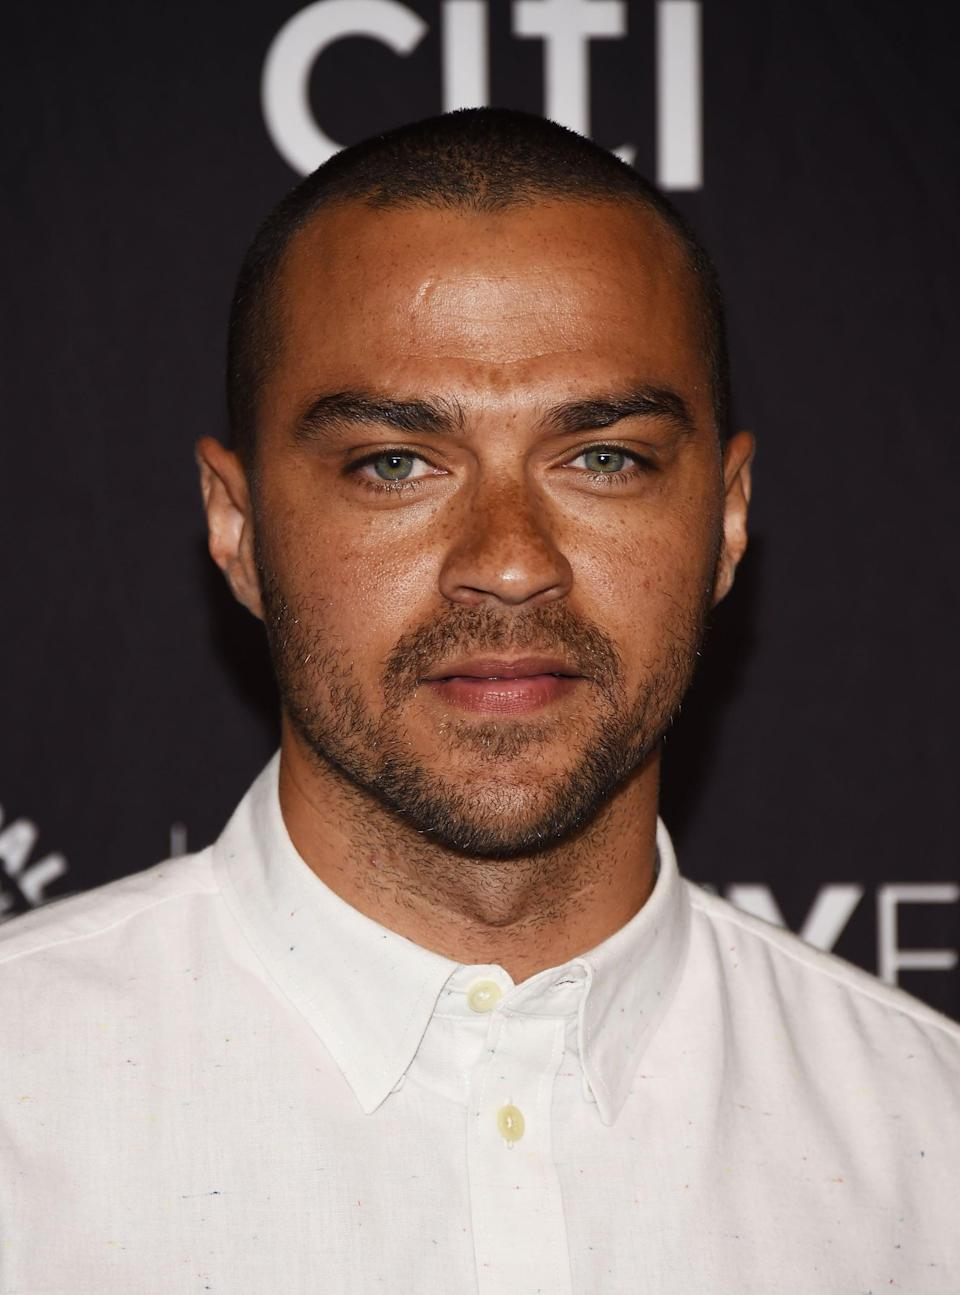 """<p>Jesse and Minka starred first sparked romance rumors in January 2017, when they were spotted at a a video-game shoot in Paris. <a href=""""http://people.com/celebrity/jesse-williams-minka-kelly-dating/"""" class=""""link rapid-noclick-resp"""" rel=""""nofollow noopener"""" target=""""_blank"""" data-ylk=""""slk:Their relationship was eventually confirmed"""">Their relationship was eventually confirmed</a> that July, three months after the <strong><a class=""""link rapid-noclick-resp"""" href=""""https://www.popsugar.com/Grey%E2%80%99s-Anatomy"""" rel=""""nofollow noopener"""" target=""""_blank"""" data-ylk=""""slk:Grey's Anatomy"""">Grey's Anatomy</a></strong> star <a href=""""https://www.popsugar.com/celebrity/Jesse-Williams-Aryn-Drake-Lee-Divorce-2017-43463095"""" class=""""link rapid-noclick-resp"""" rel=""""nofollow noopener"""" target=""""_blank"""" data-ylk=""""slk:announced his split from his wife"""">announced his split from his wife</a> of five years, Aryn Drake-Lee. </p> <p>Despite the timing, Jesse has <a href=""""https://www.popsugar.com/celebrity/Jesse-Williams-Quotes-About-Divorce-JAY-Z-444-43726963"""" class=""""link rapid-noclick-resp"""" rel=""""nofollow noopener"""" target=""""_blank"""" data-ylk=""""slk:addressed reports of infidelity on his part"""">addressed reports of infidelity on his part</a>. In an 11-minute Tidal video, <strong>Footnotes For 4:44</strong>, for JAY-Z's latest album, he says, """"I was in a relationship 13 years - 13 real years, not five years, not seven years, 13 years. And all of a sudden motherf*ckers are writing think-pieces that I somehow threw a 13-year relationship. Like, the most painful experience I've had in my life - like with a person I've loved with all of my heart - that I threw a person and my family in the trash because a girl I work with is cute.""""</p> <p>In January 2018, the two eventually <a href=""""https://www.popsugar.com/celebrity/Jesse-Williams-Minka-Kelly-Break-Up-44527161"""" class=""""link rapid-noclick-resp"""" rel=""""nofollow noopener"""" target=""""_blank"""" data-ylk=""""slk:called it quits"""">called it quits</a>.</p>"""